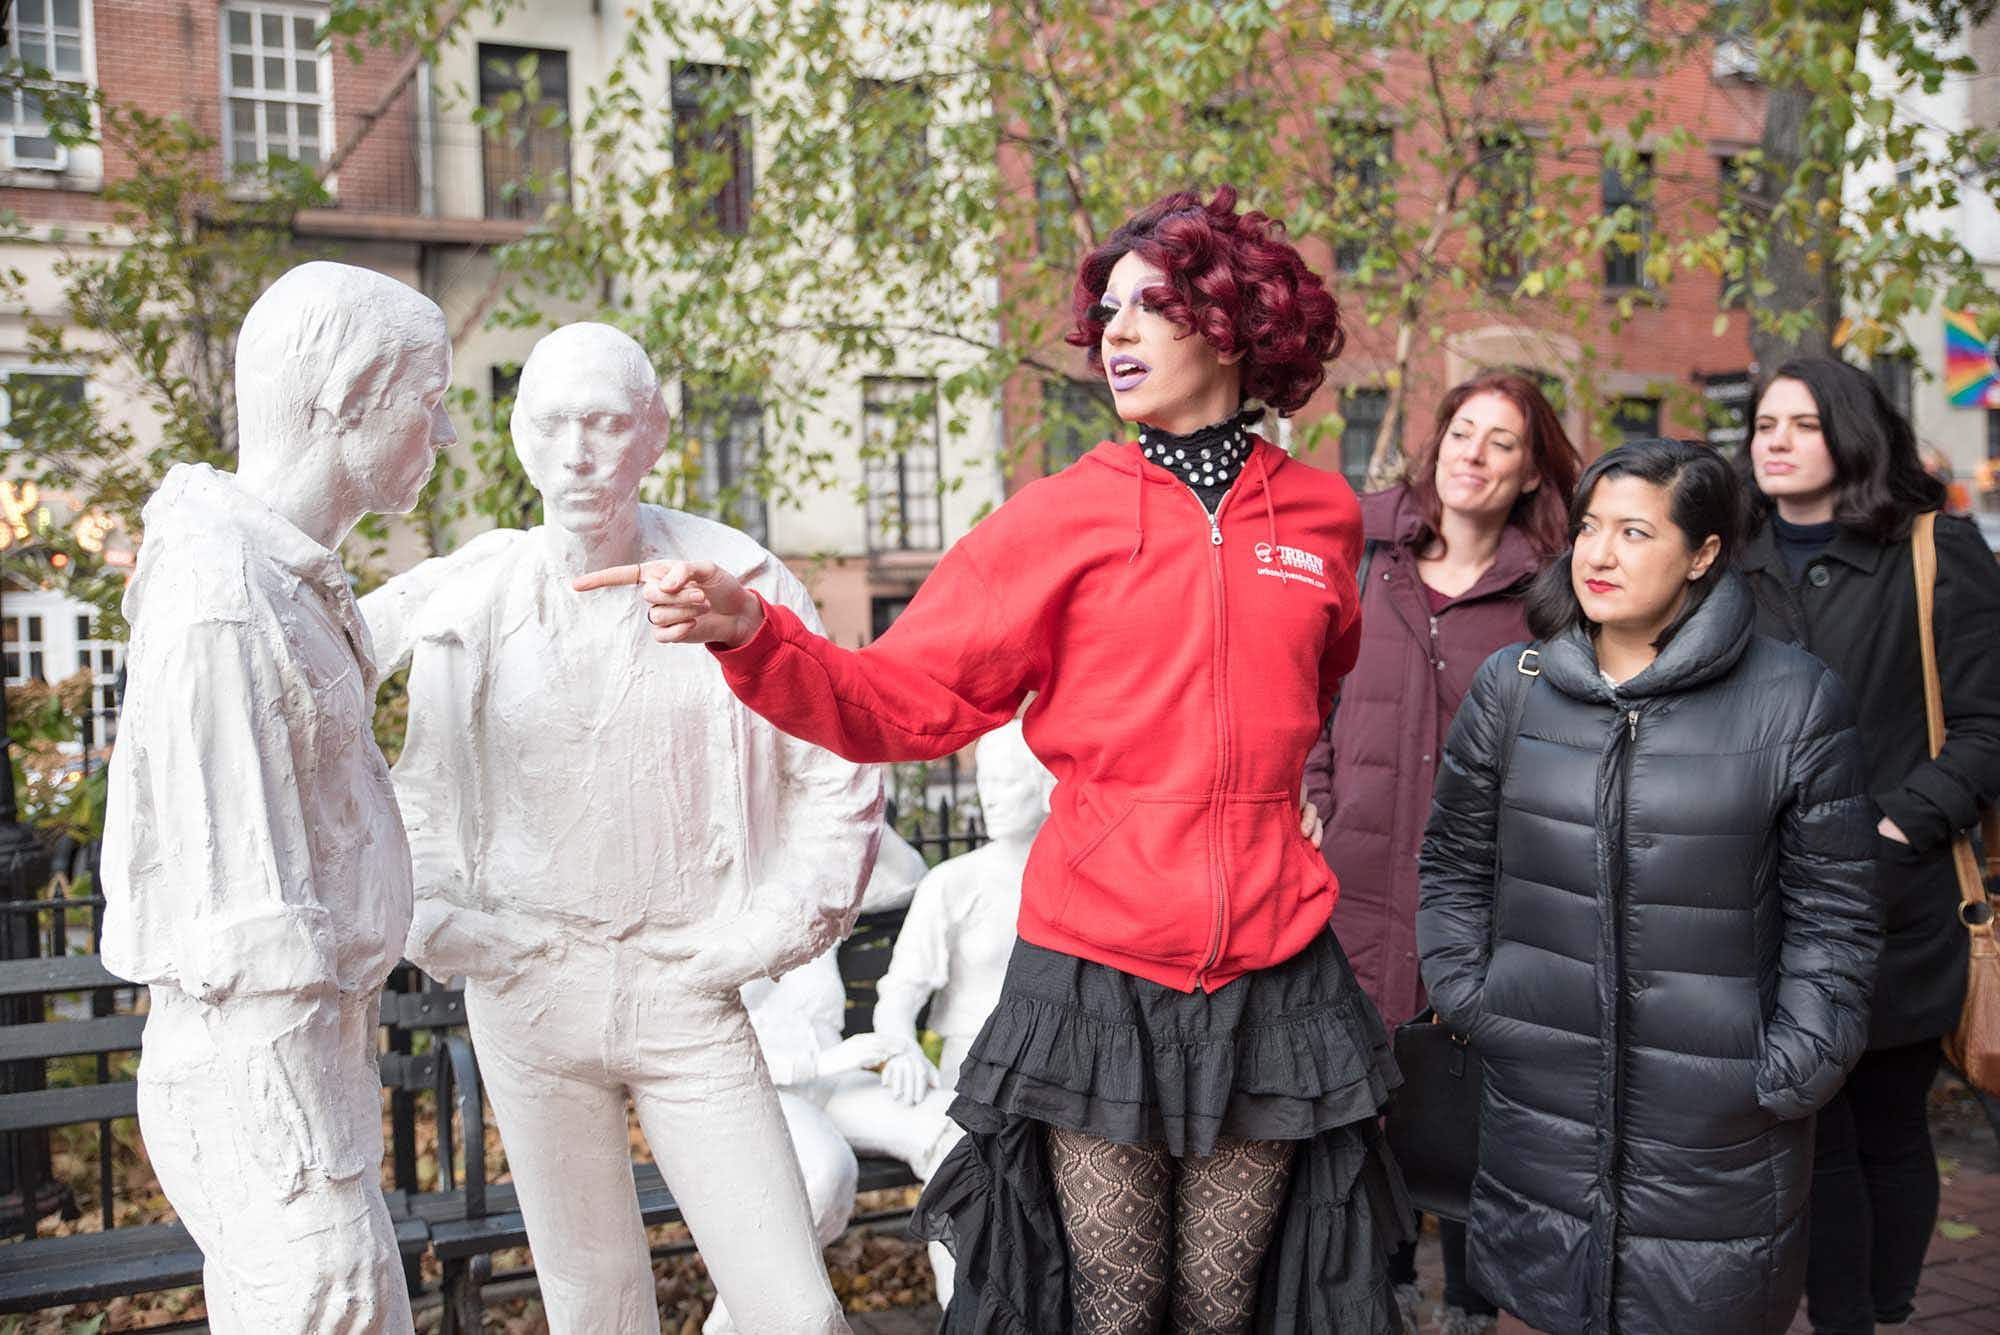 This new tour takes you through New York's LGBTQ+ history